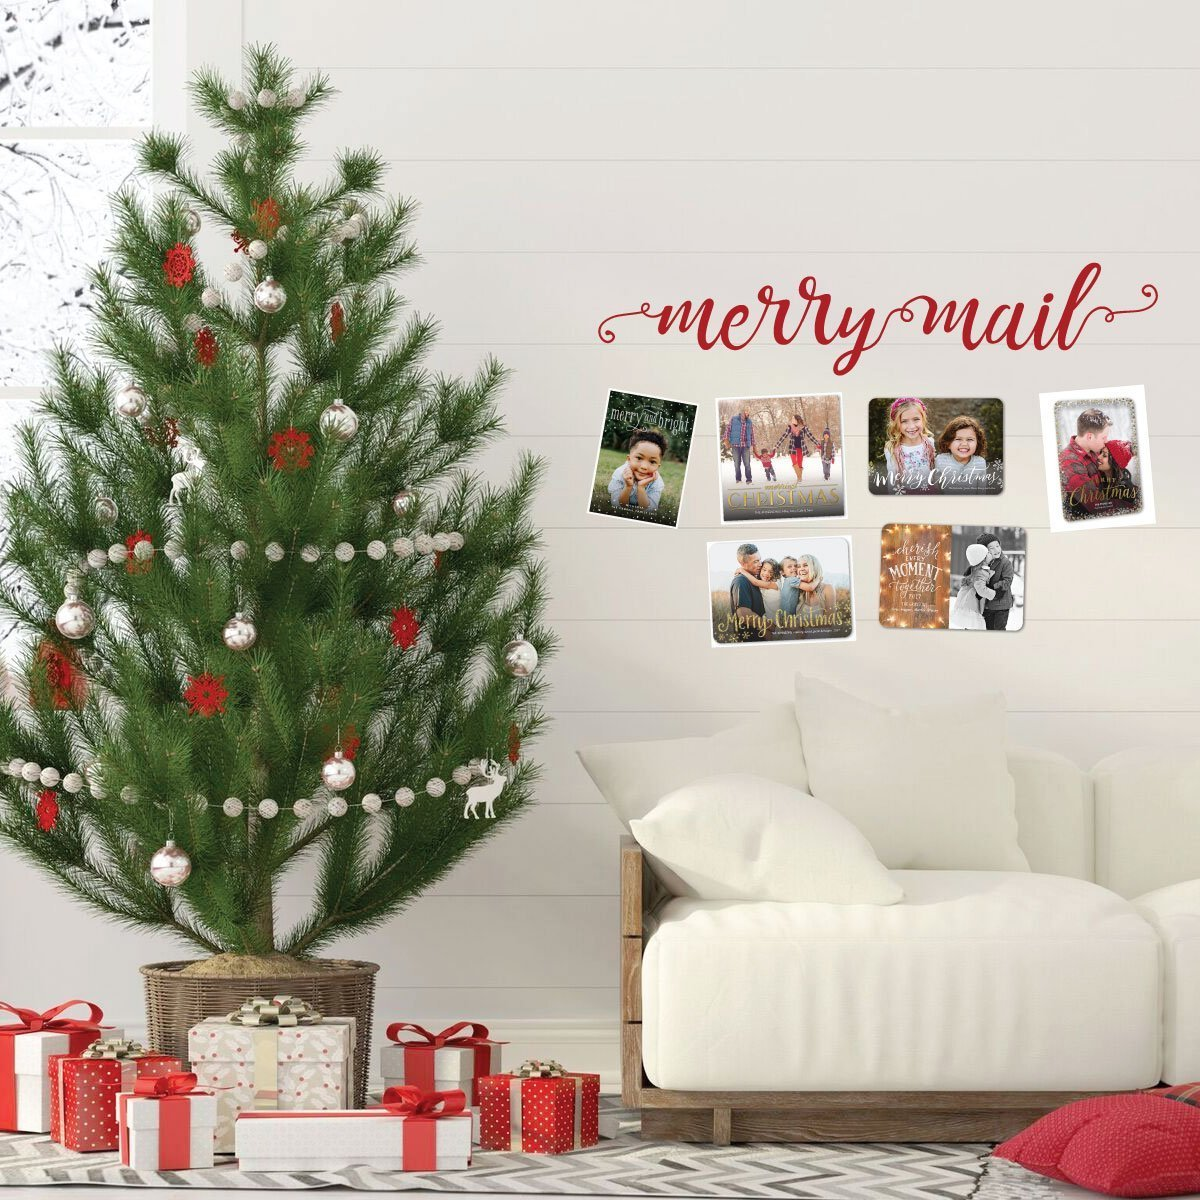 Mail On Christmas Eve 2019.Merry Mail Christmas Holiday Vinyl Decor Wall Decal